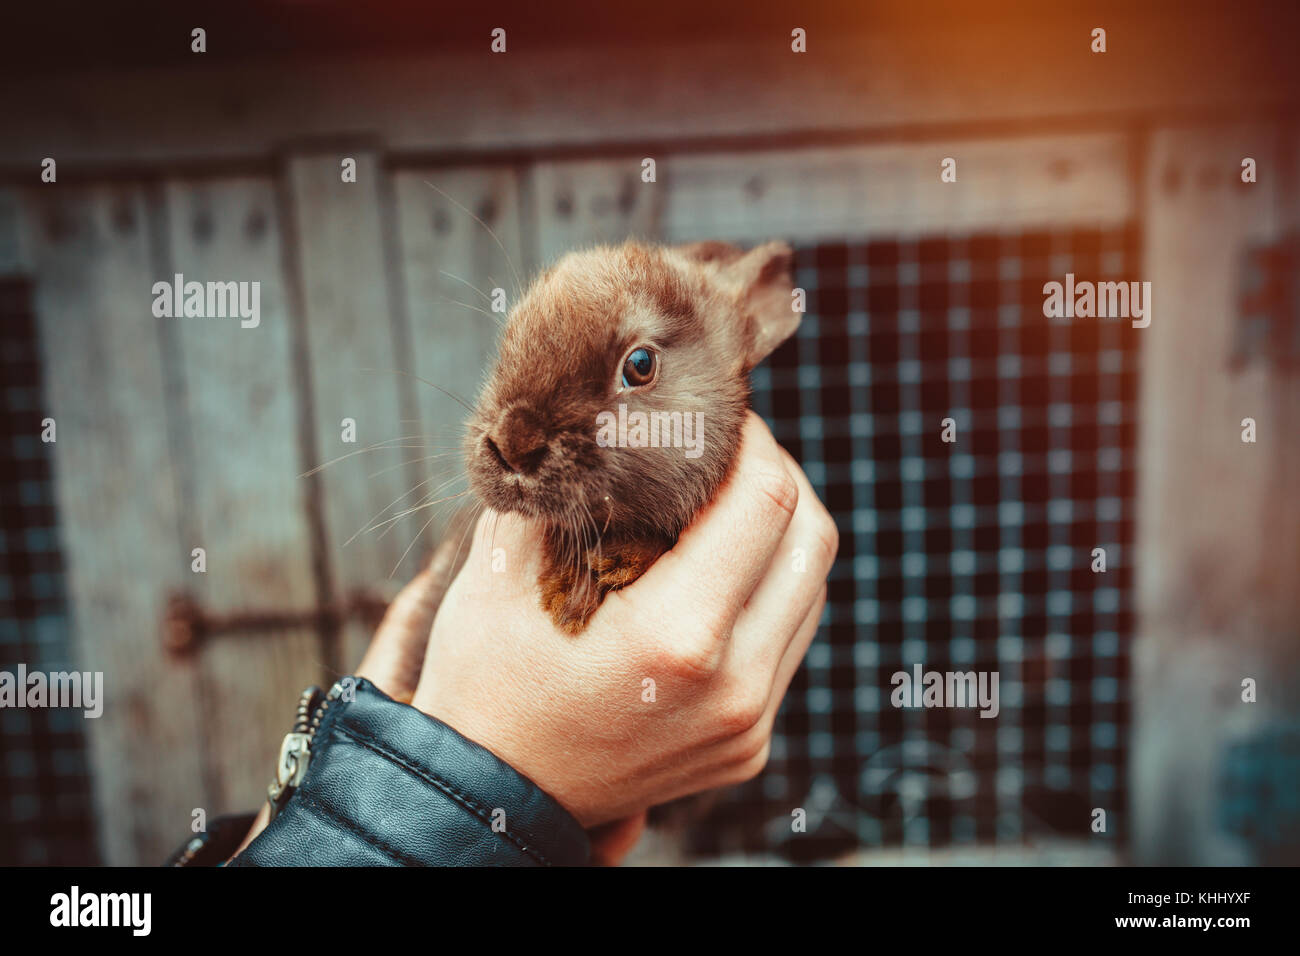 Bunny bébé dans la main Photo Stock